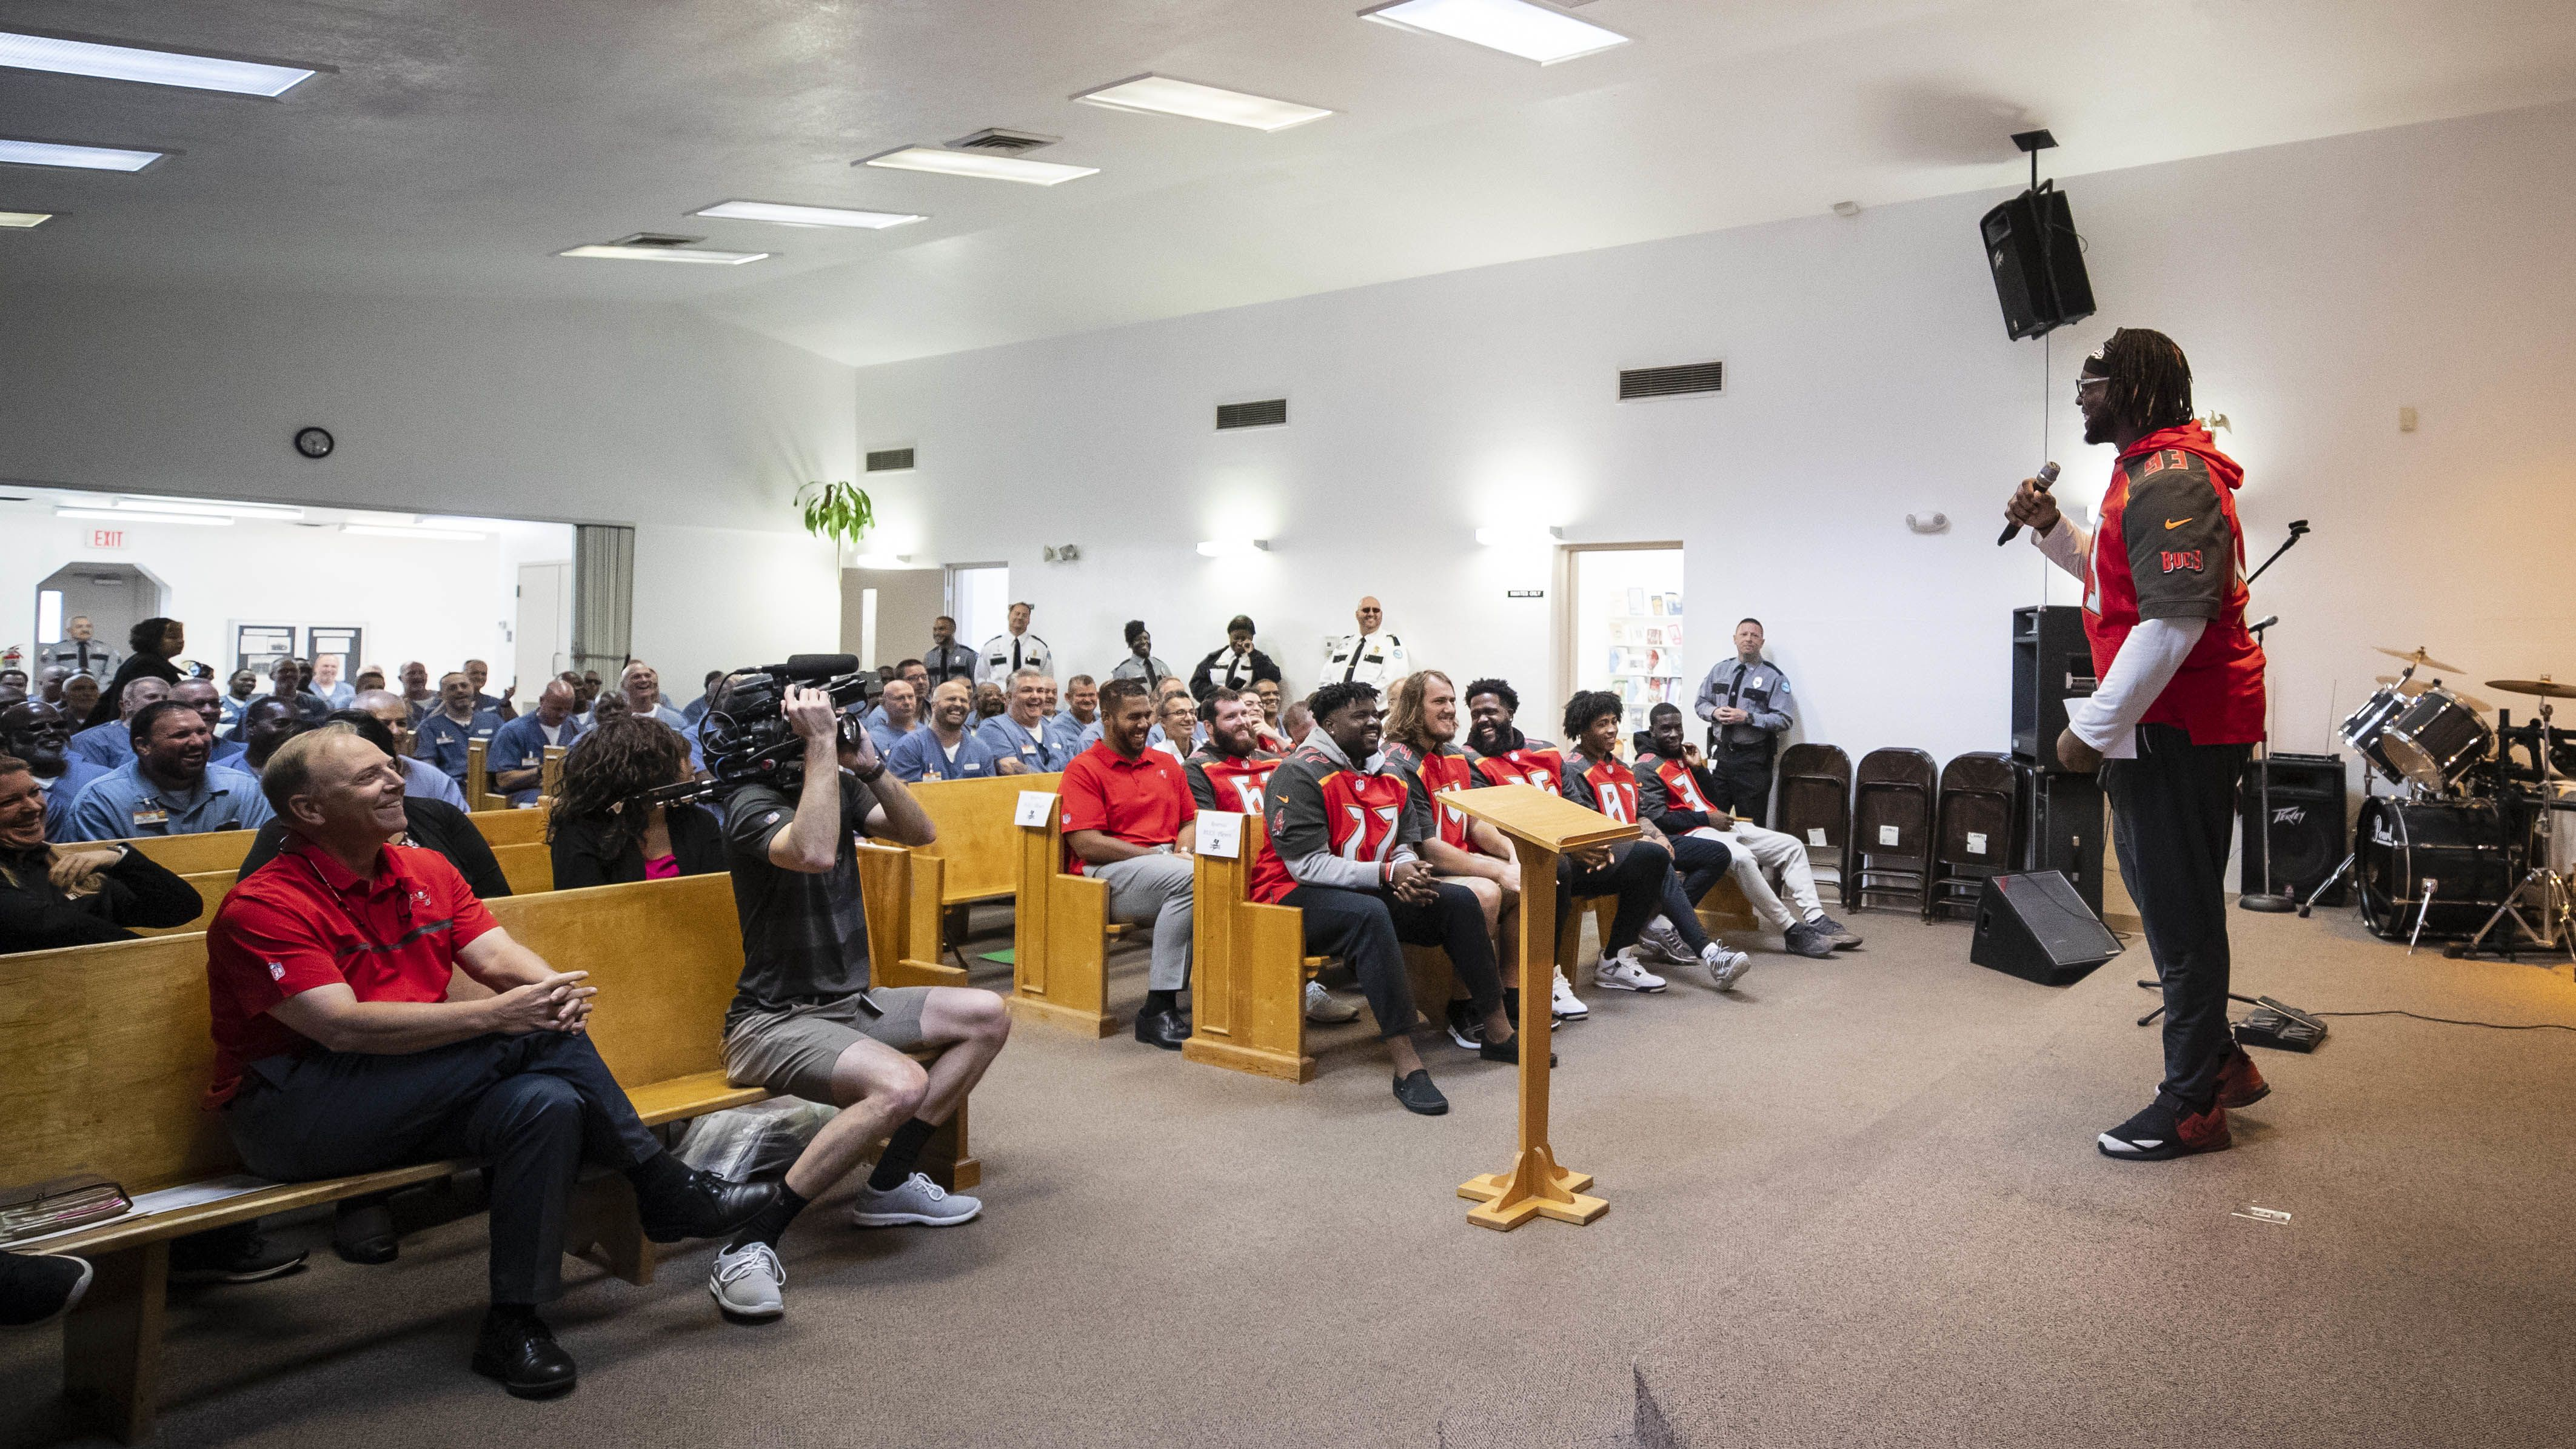 Visit to Zephyrhills Correctional Facility Puts Things in Perspective for Buccaneers Players